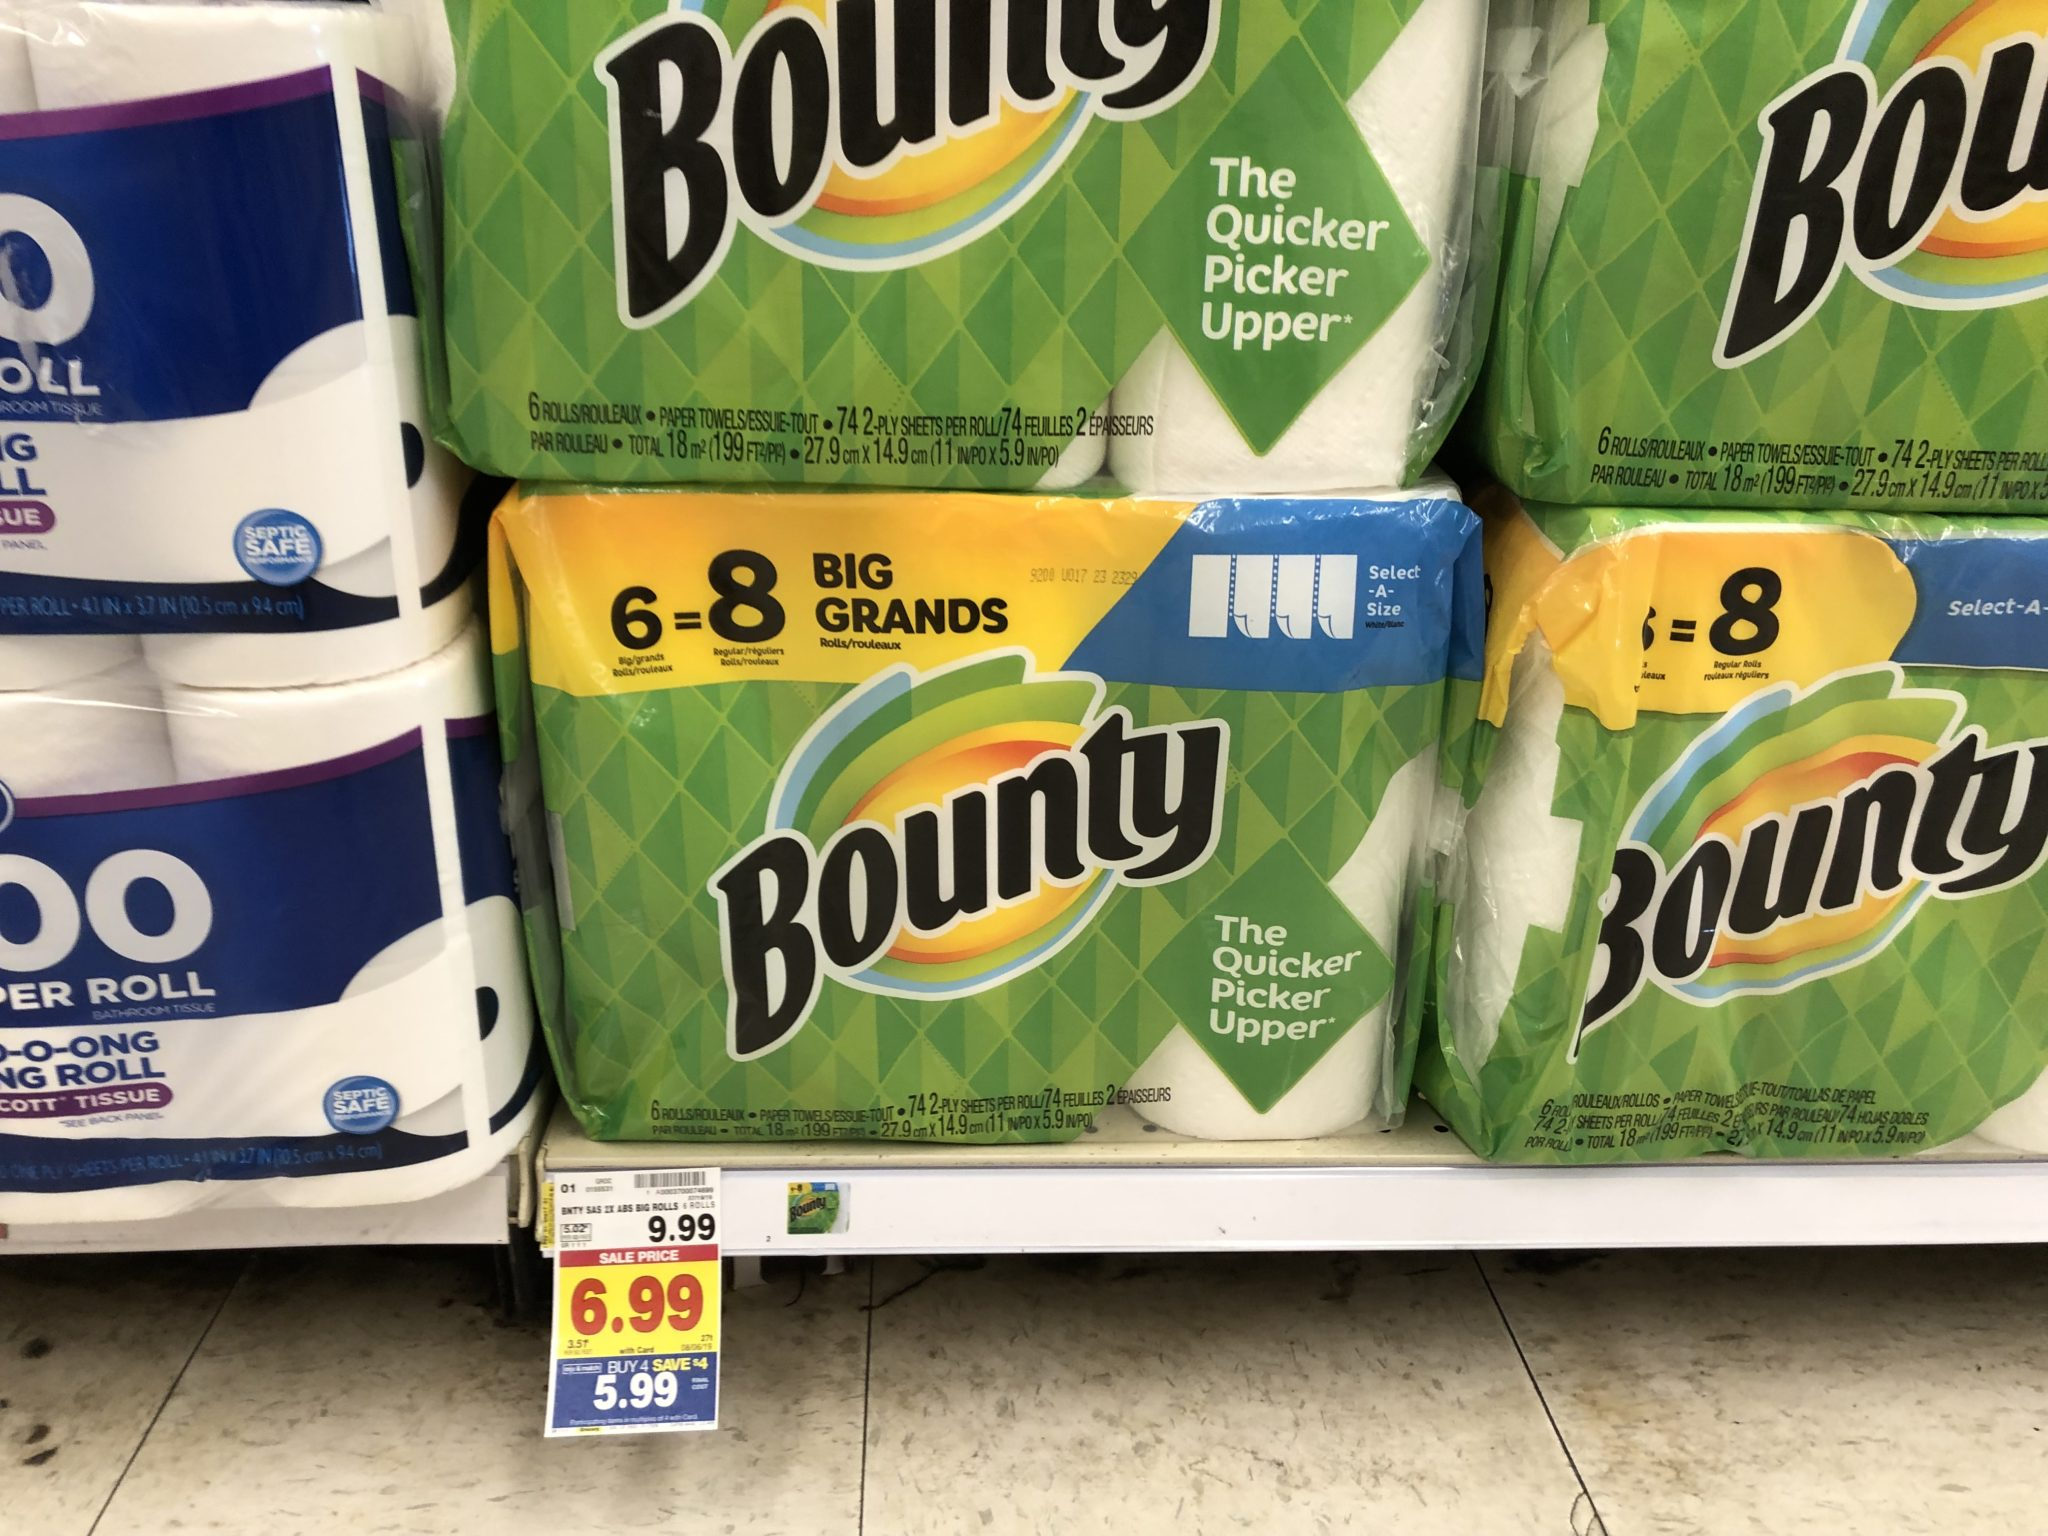 Charmin Only $3.99 & Bounty Only $4.99 At Kroger